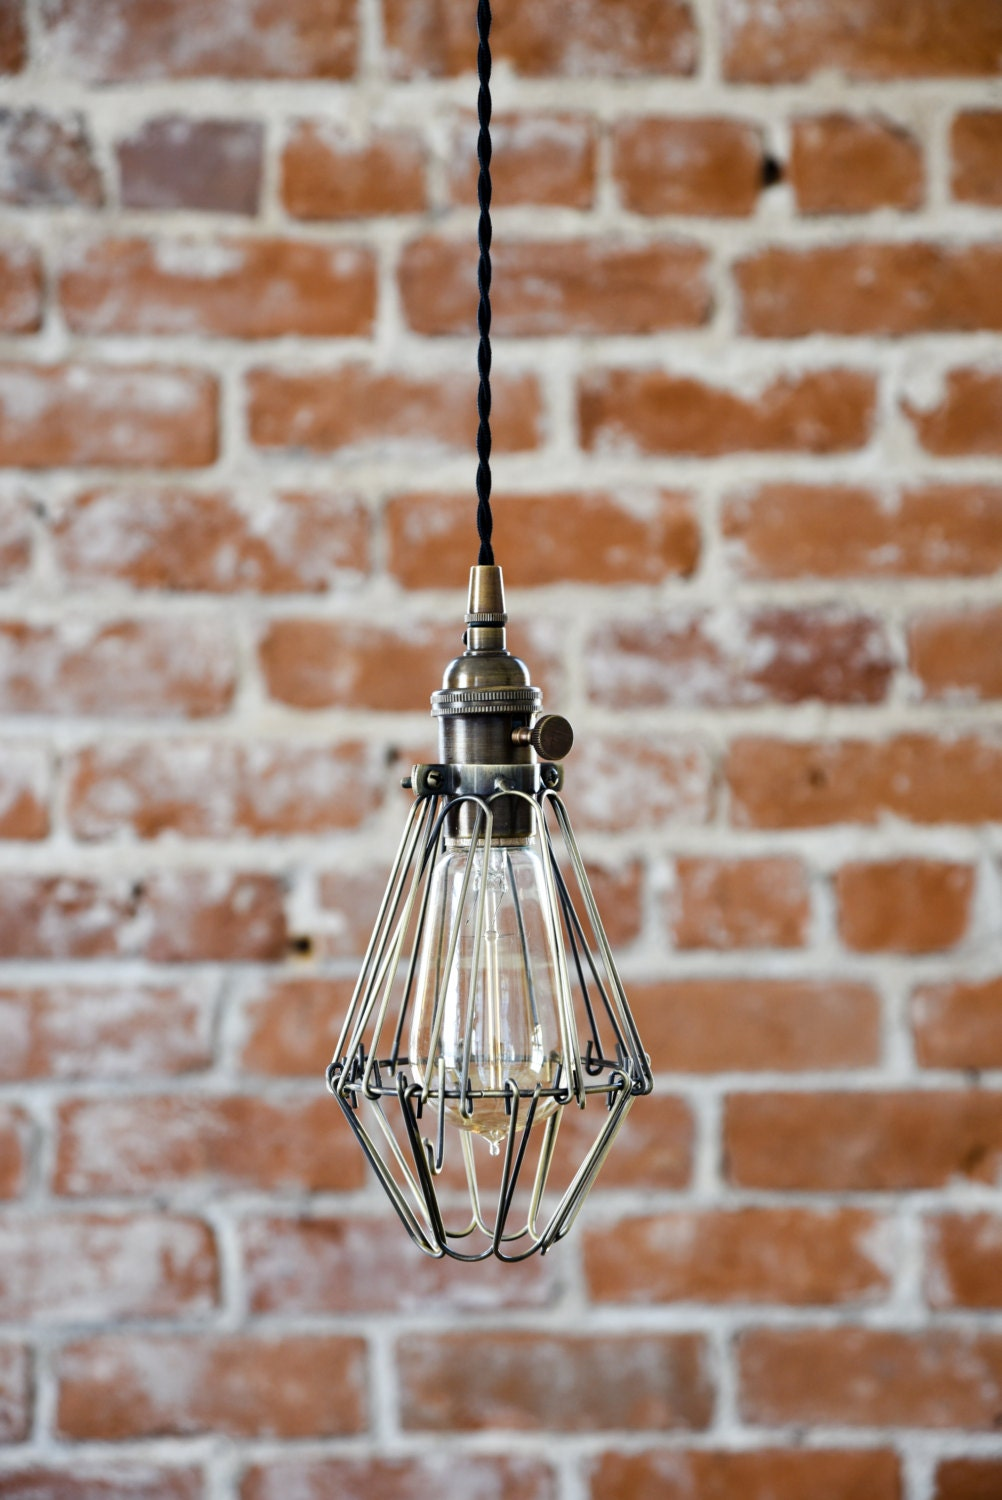 pendant light antique brass mid century modern industrial rh illuminatevintage com Wiring a Ceiling Light Fixture Basic Ceiling Light Wiring Diagram